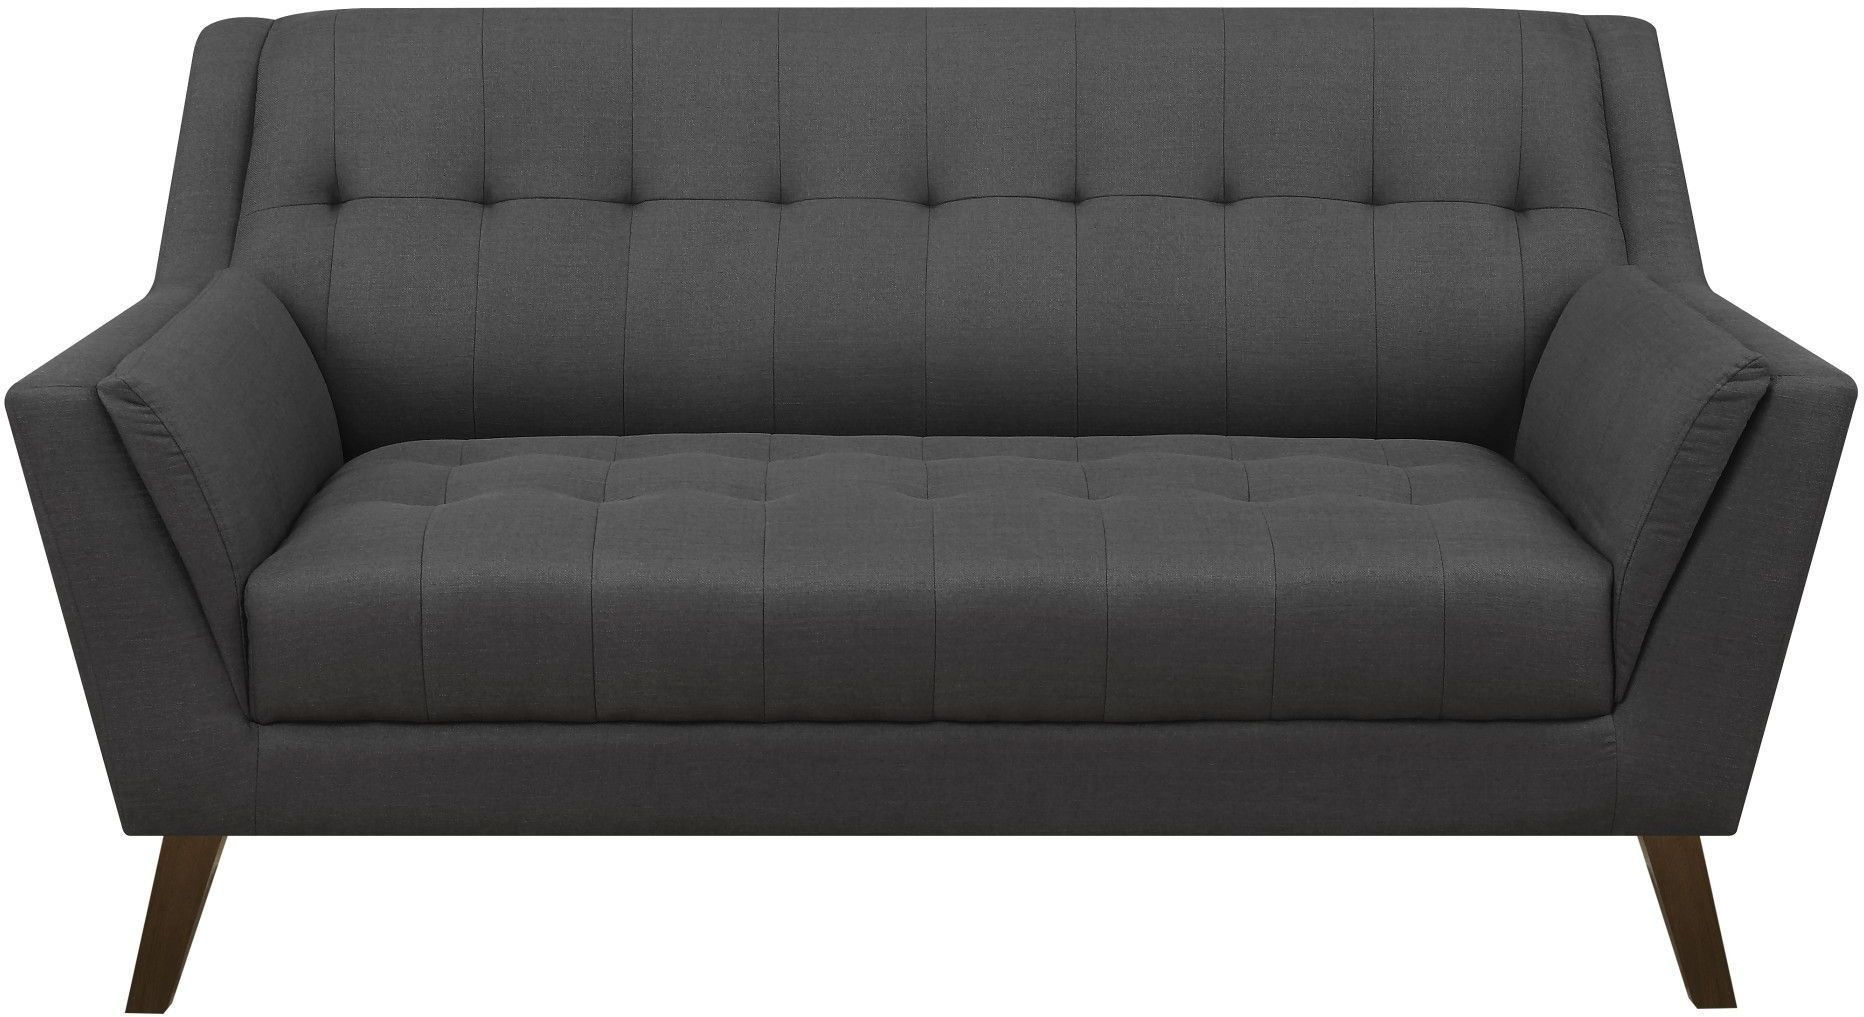 Binetti Charcoal Loveseat From Emerald Home Coleman Furniture